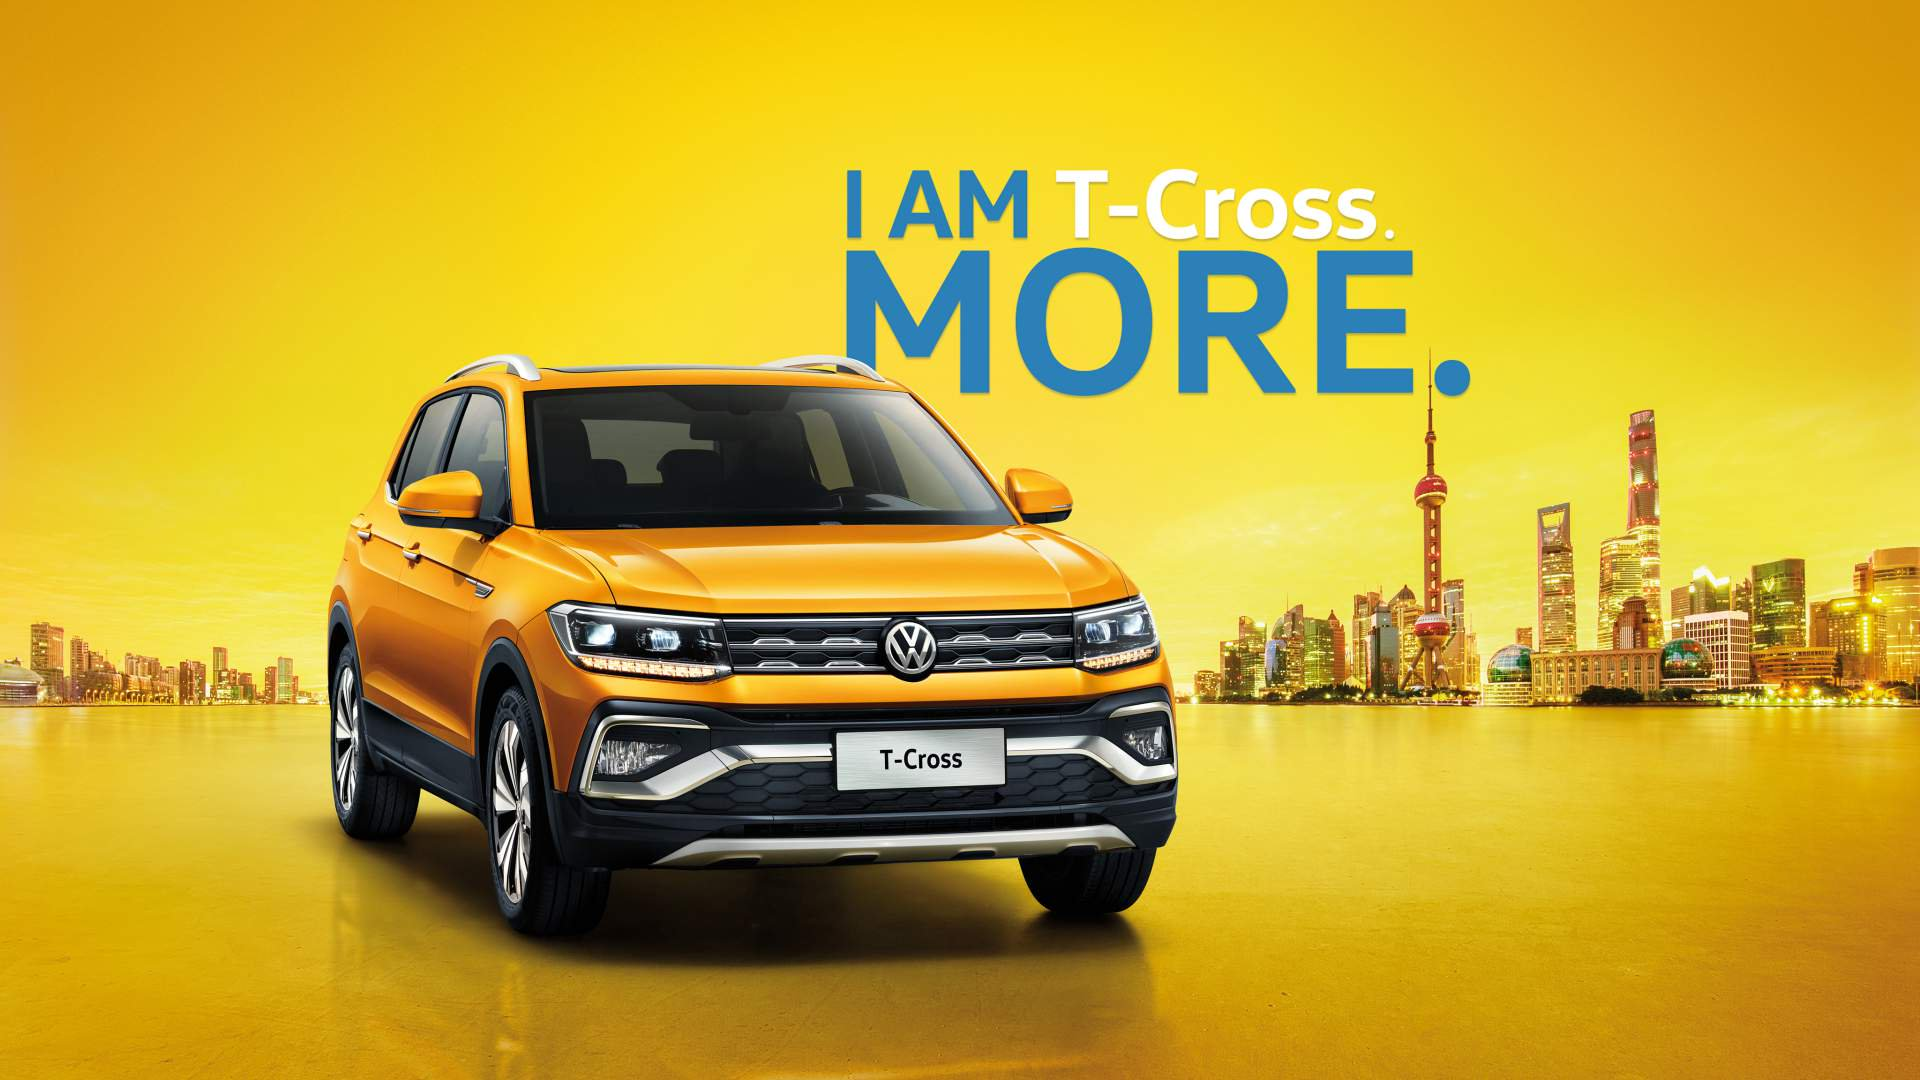 2019 volkswagen t cross starts at 17 975 eur order books. Black Bedroom Furniture Sets. Home Design Ideas